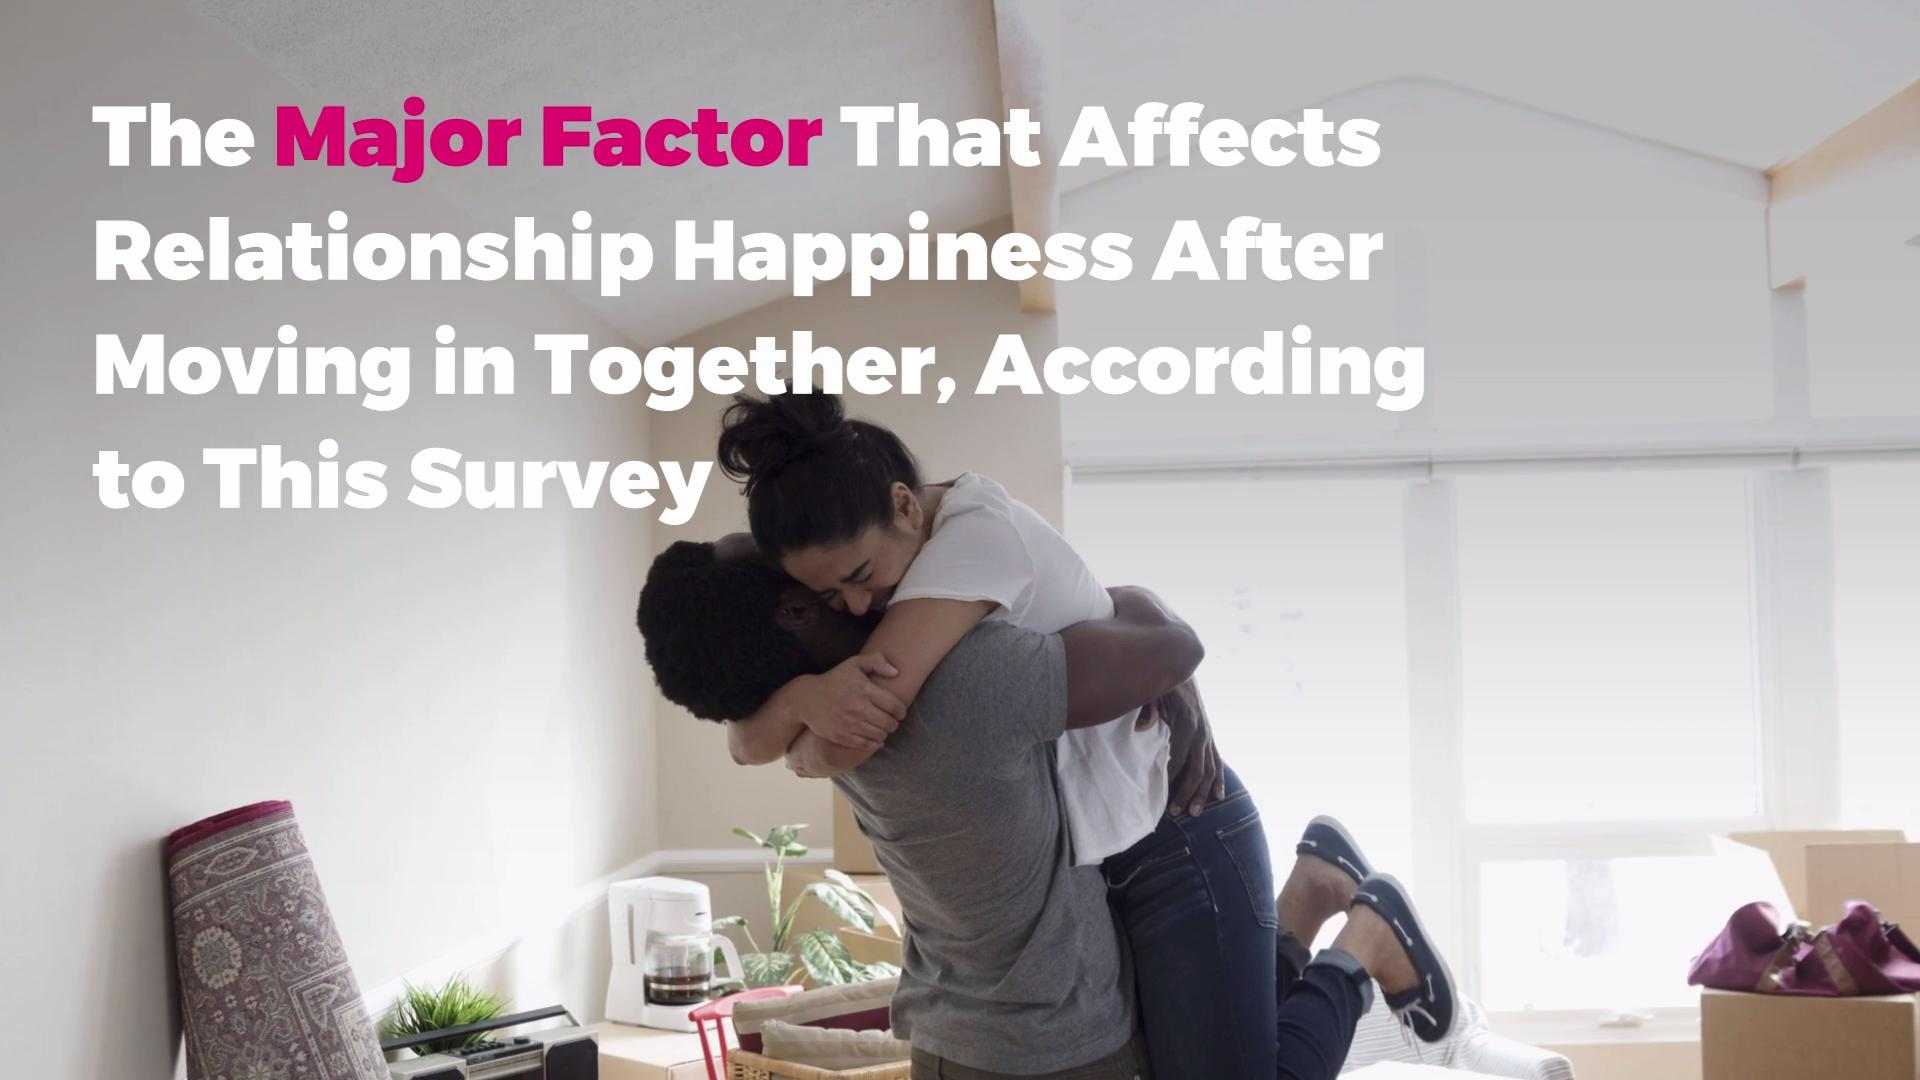 The Major Factor That Affects Relationship Happiness After Moving in Together, According to This Survey